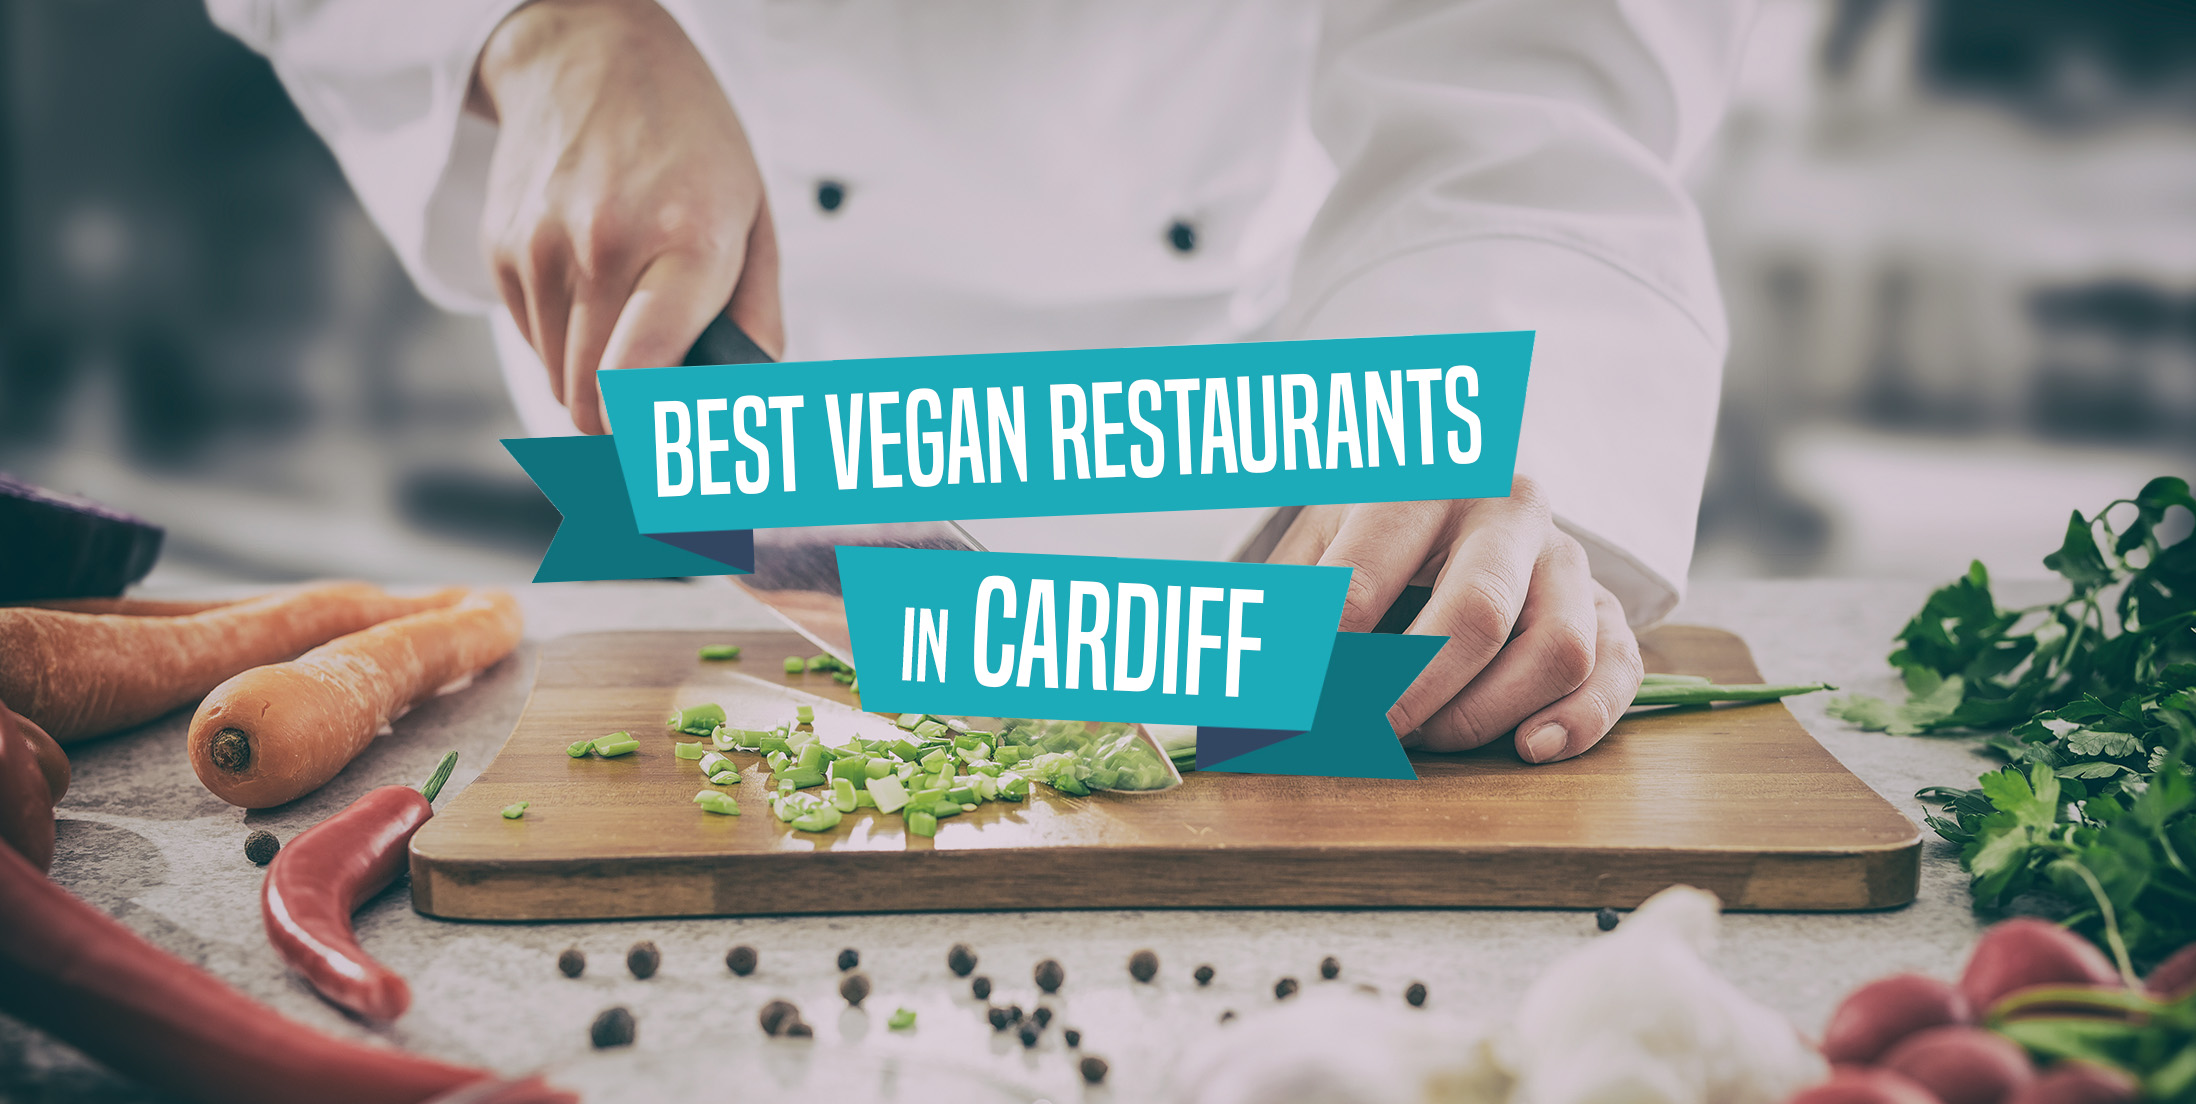 Best Vegan Restaurants in Cardiff